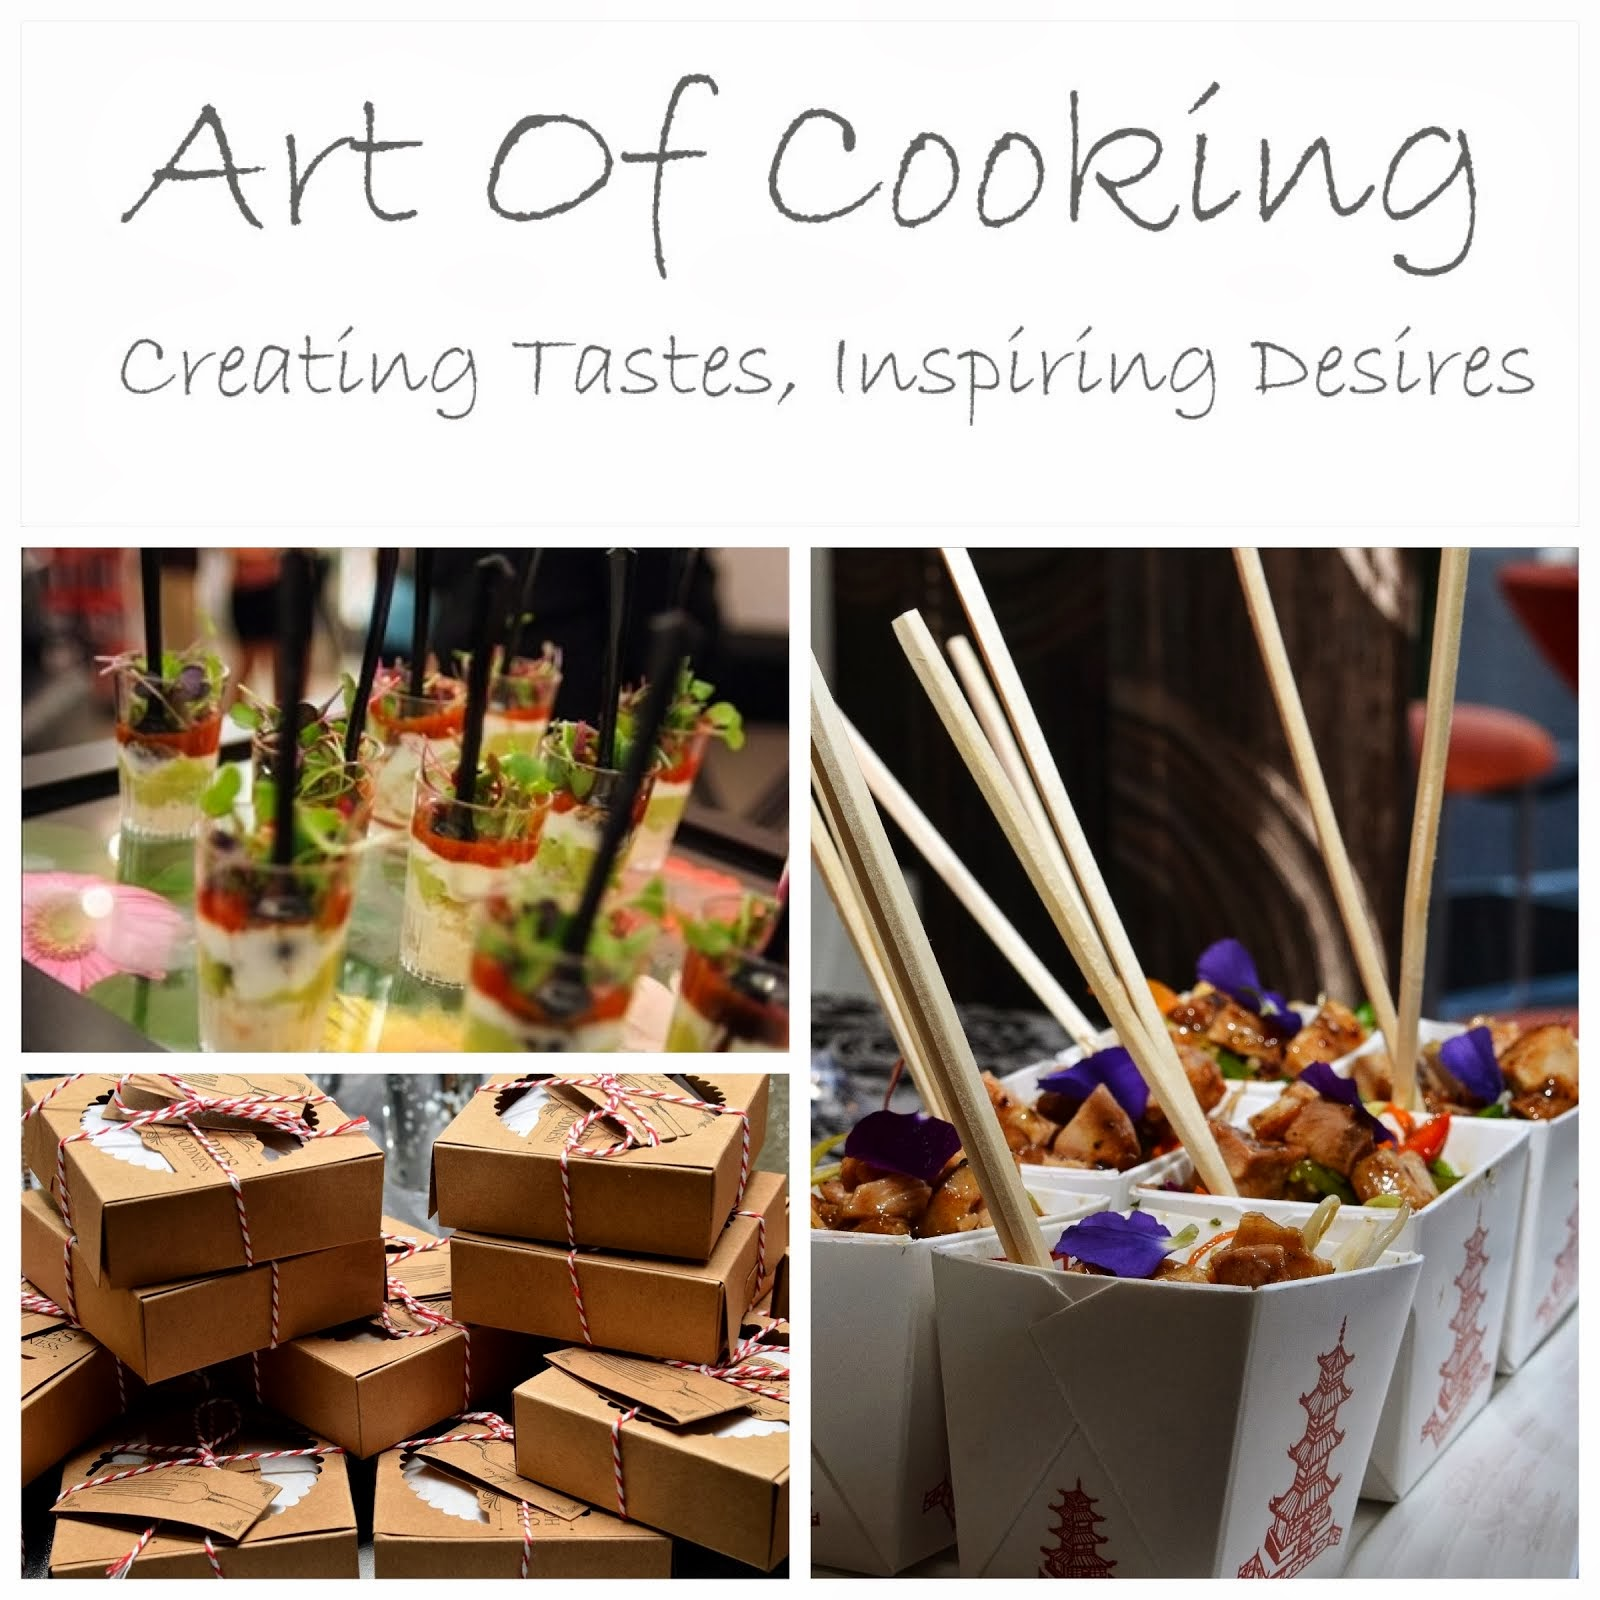 Art Of Cooking LLC Caterer & Event Designer in Las Vegas